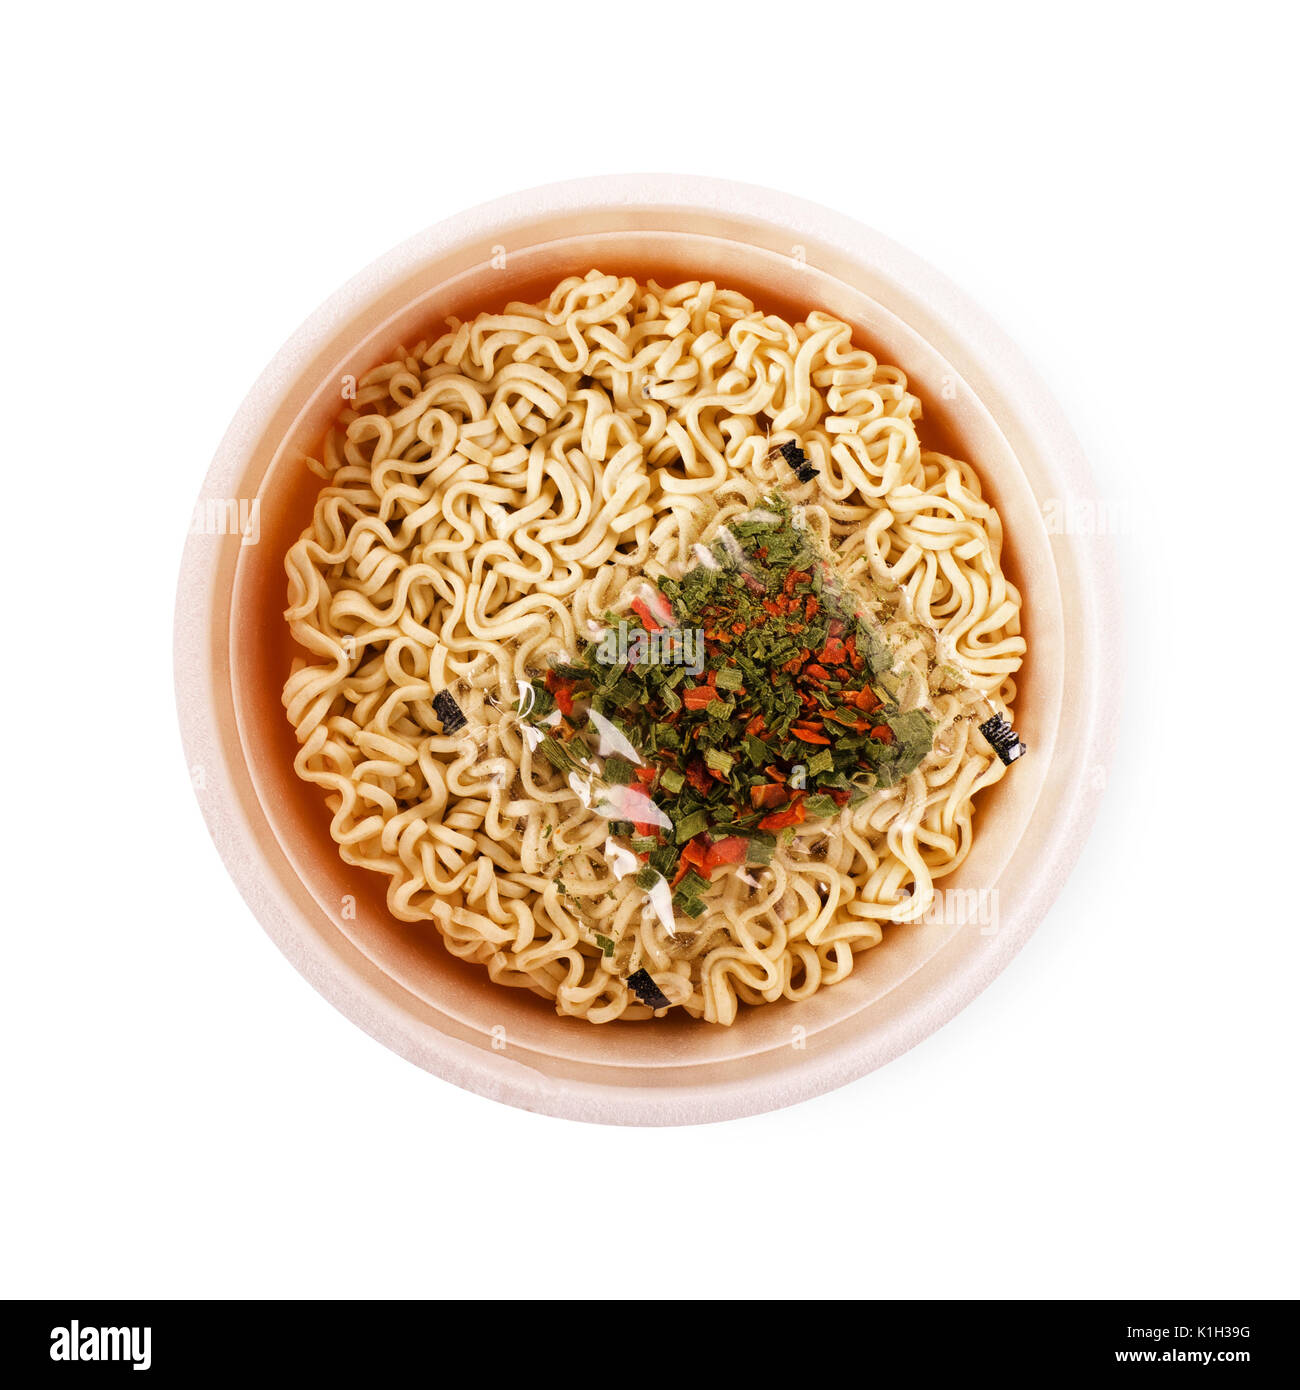 Bowl of instant noodles with spice isolated on white background - Stock Image